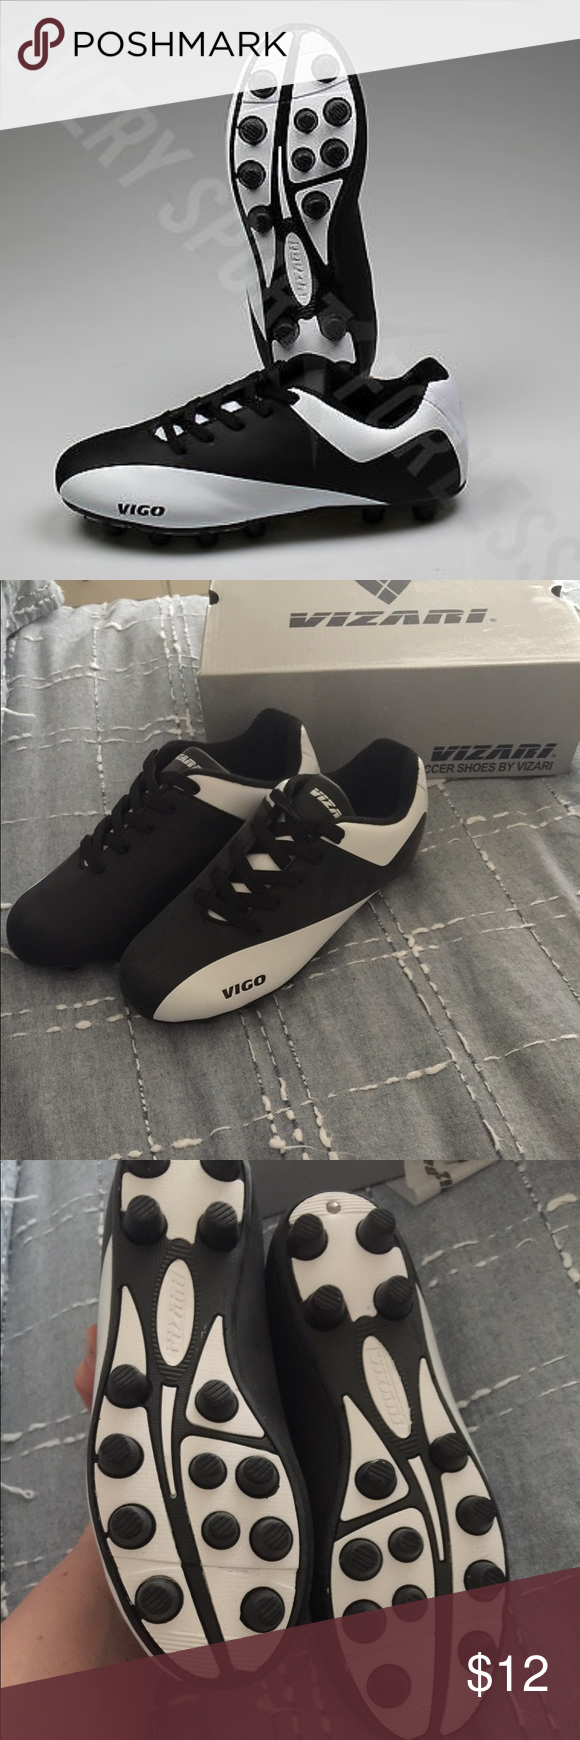 c9c27baea434 Vizari Vigo FG Youth Soccer Cleats - Like New! Only used once for 1 practice